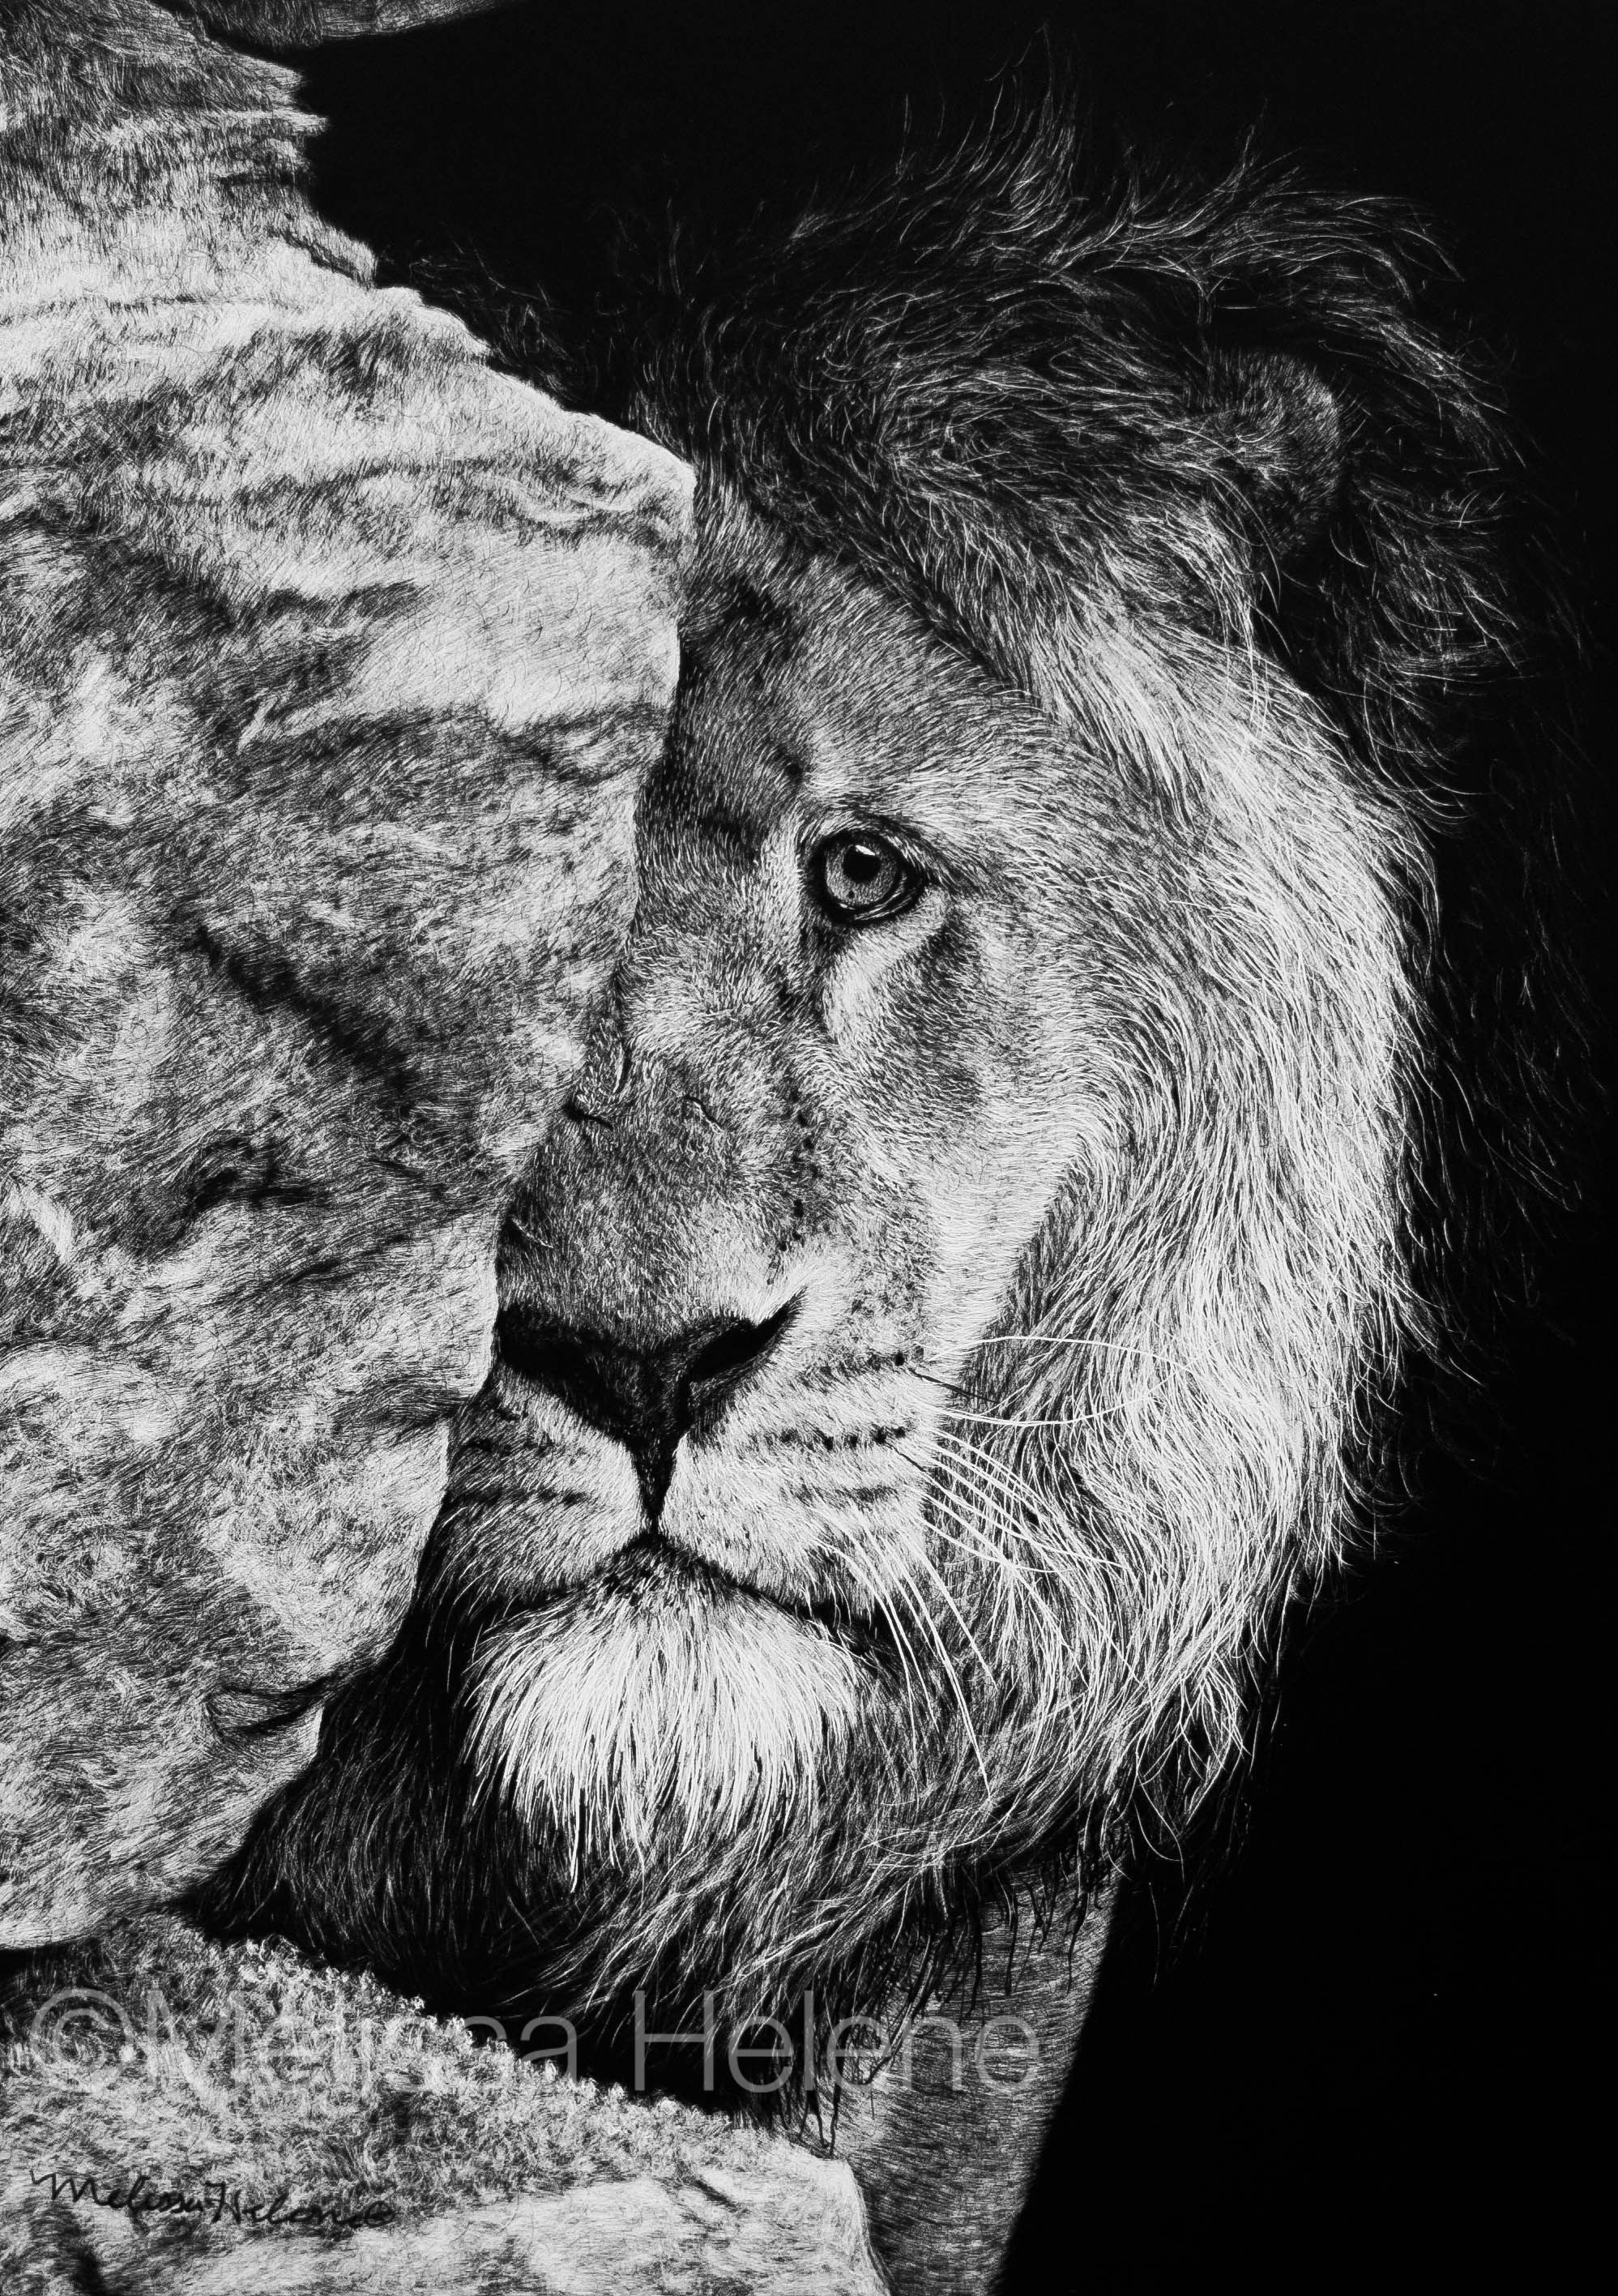 Lion sad face melissa helene fine arts photography www melissahelene com 5x7 scratchboard artwork art wildlife lion blackandwhite